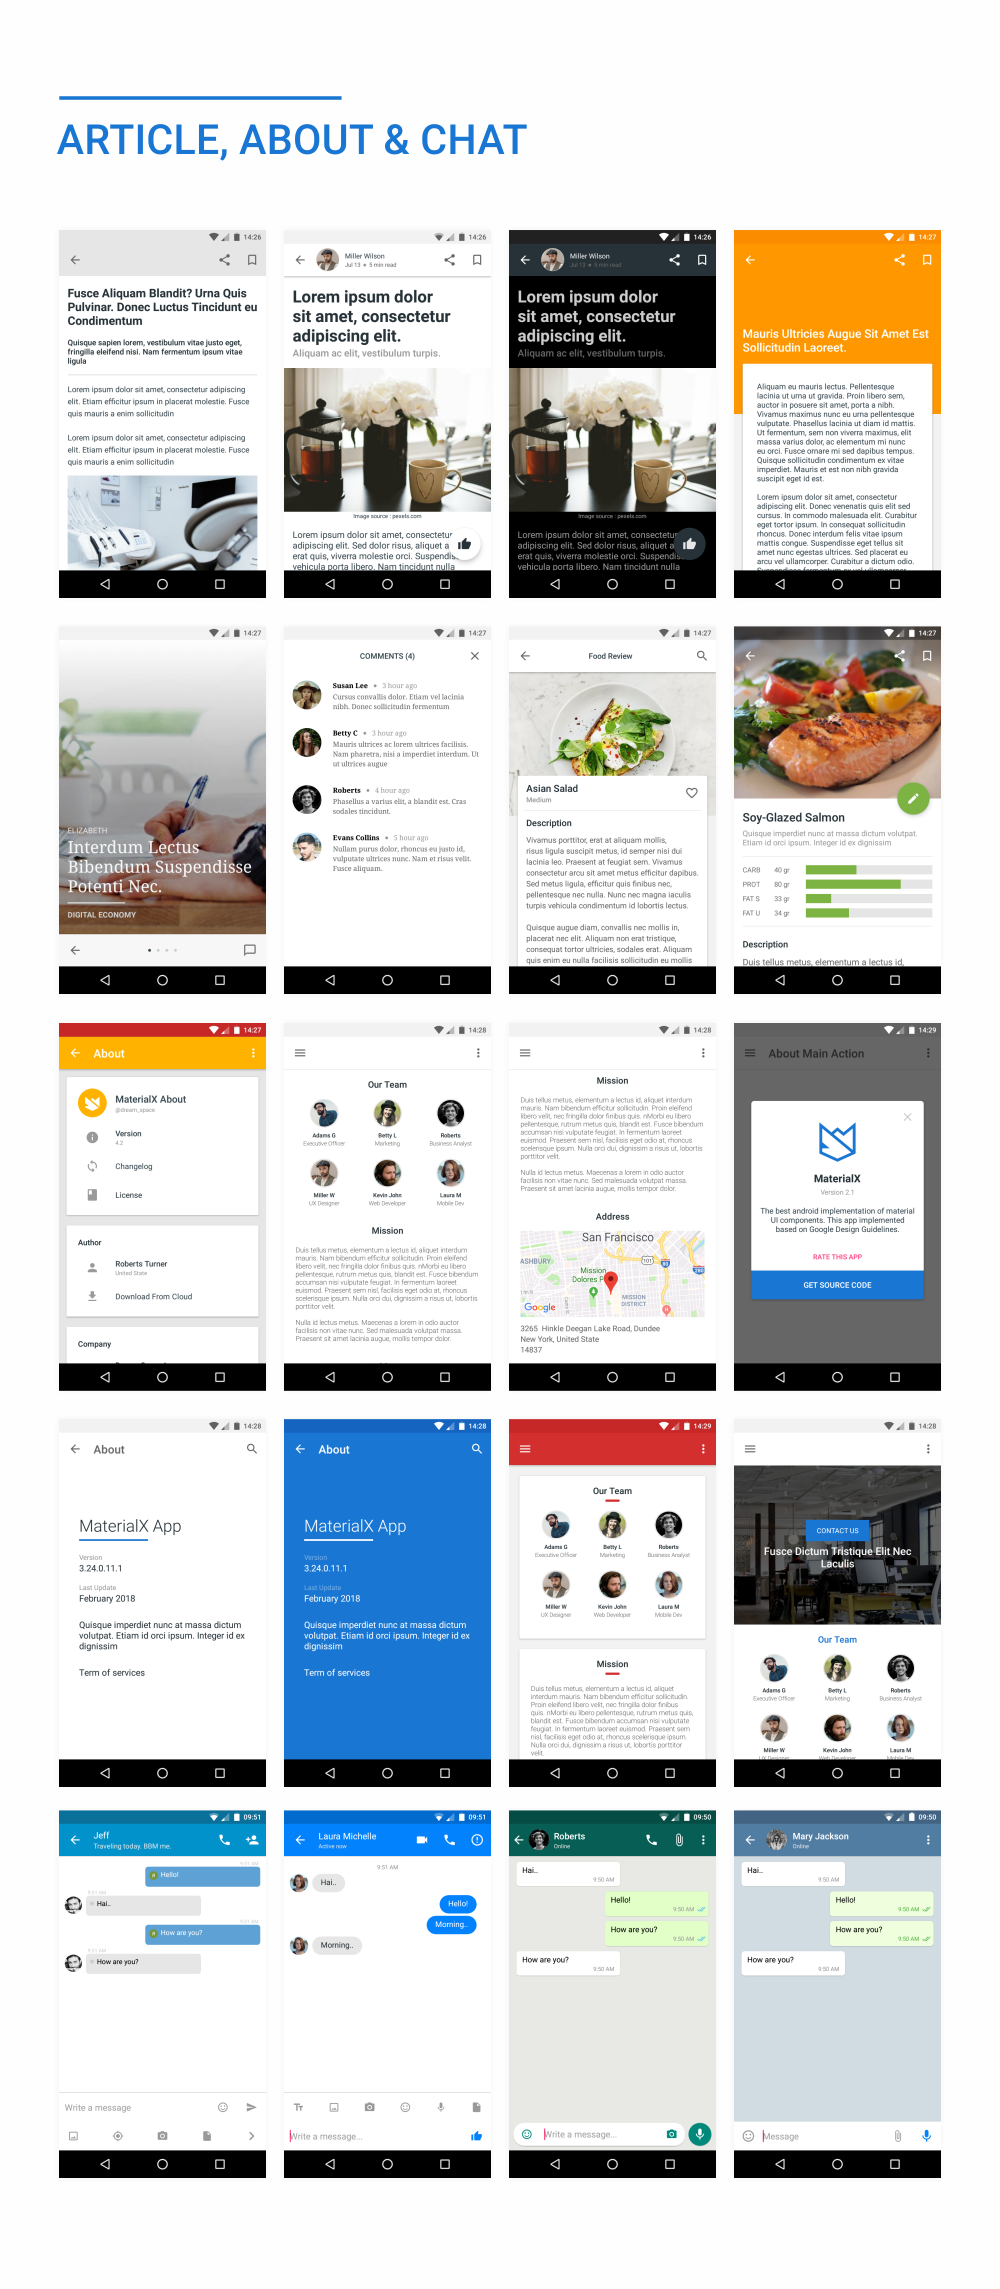 MaterialX - Android Material Design UI Components 2.4 - 48